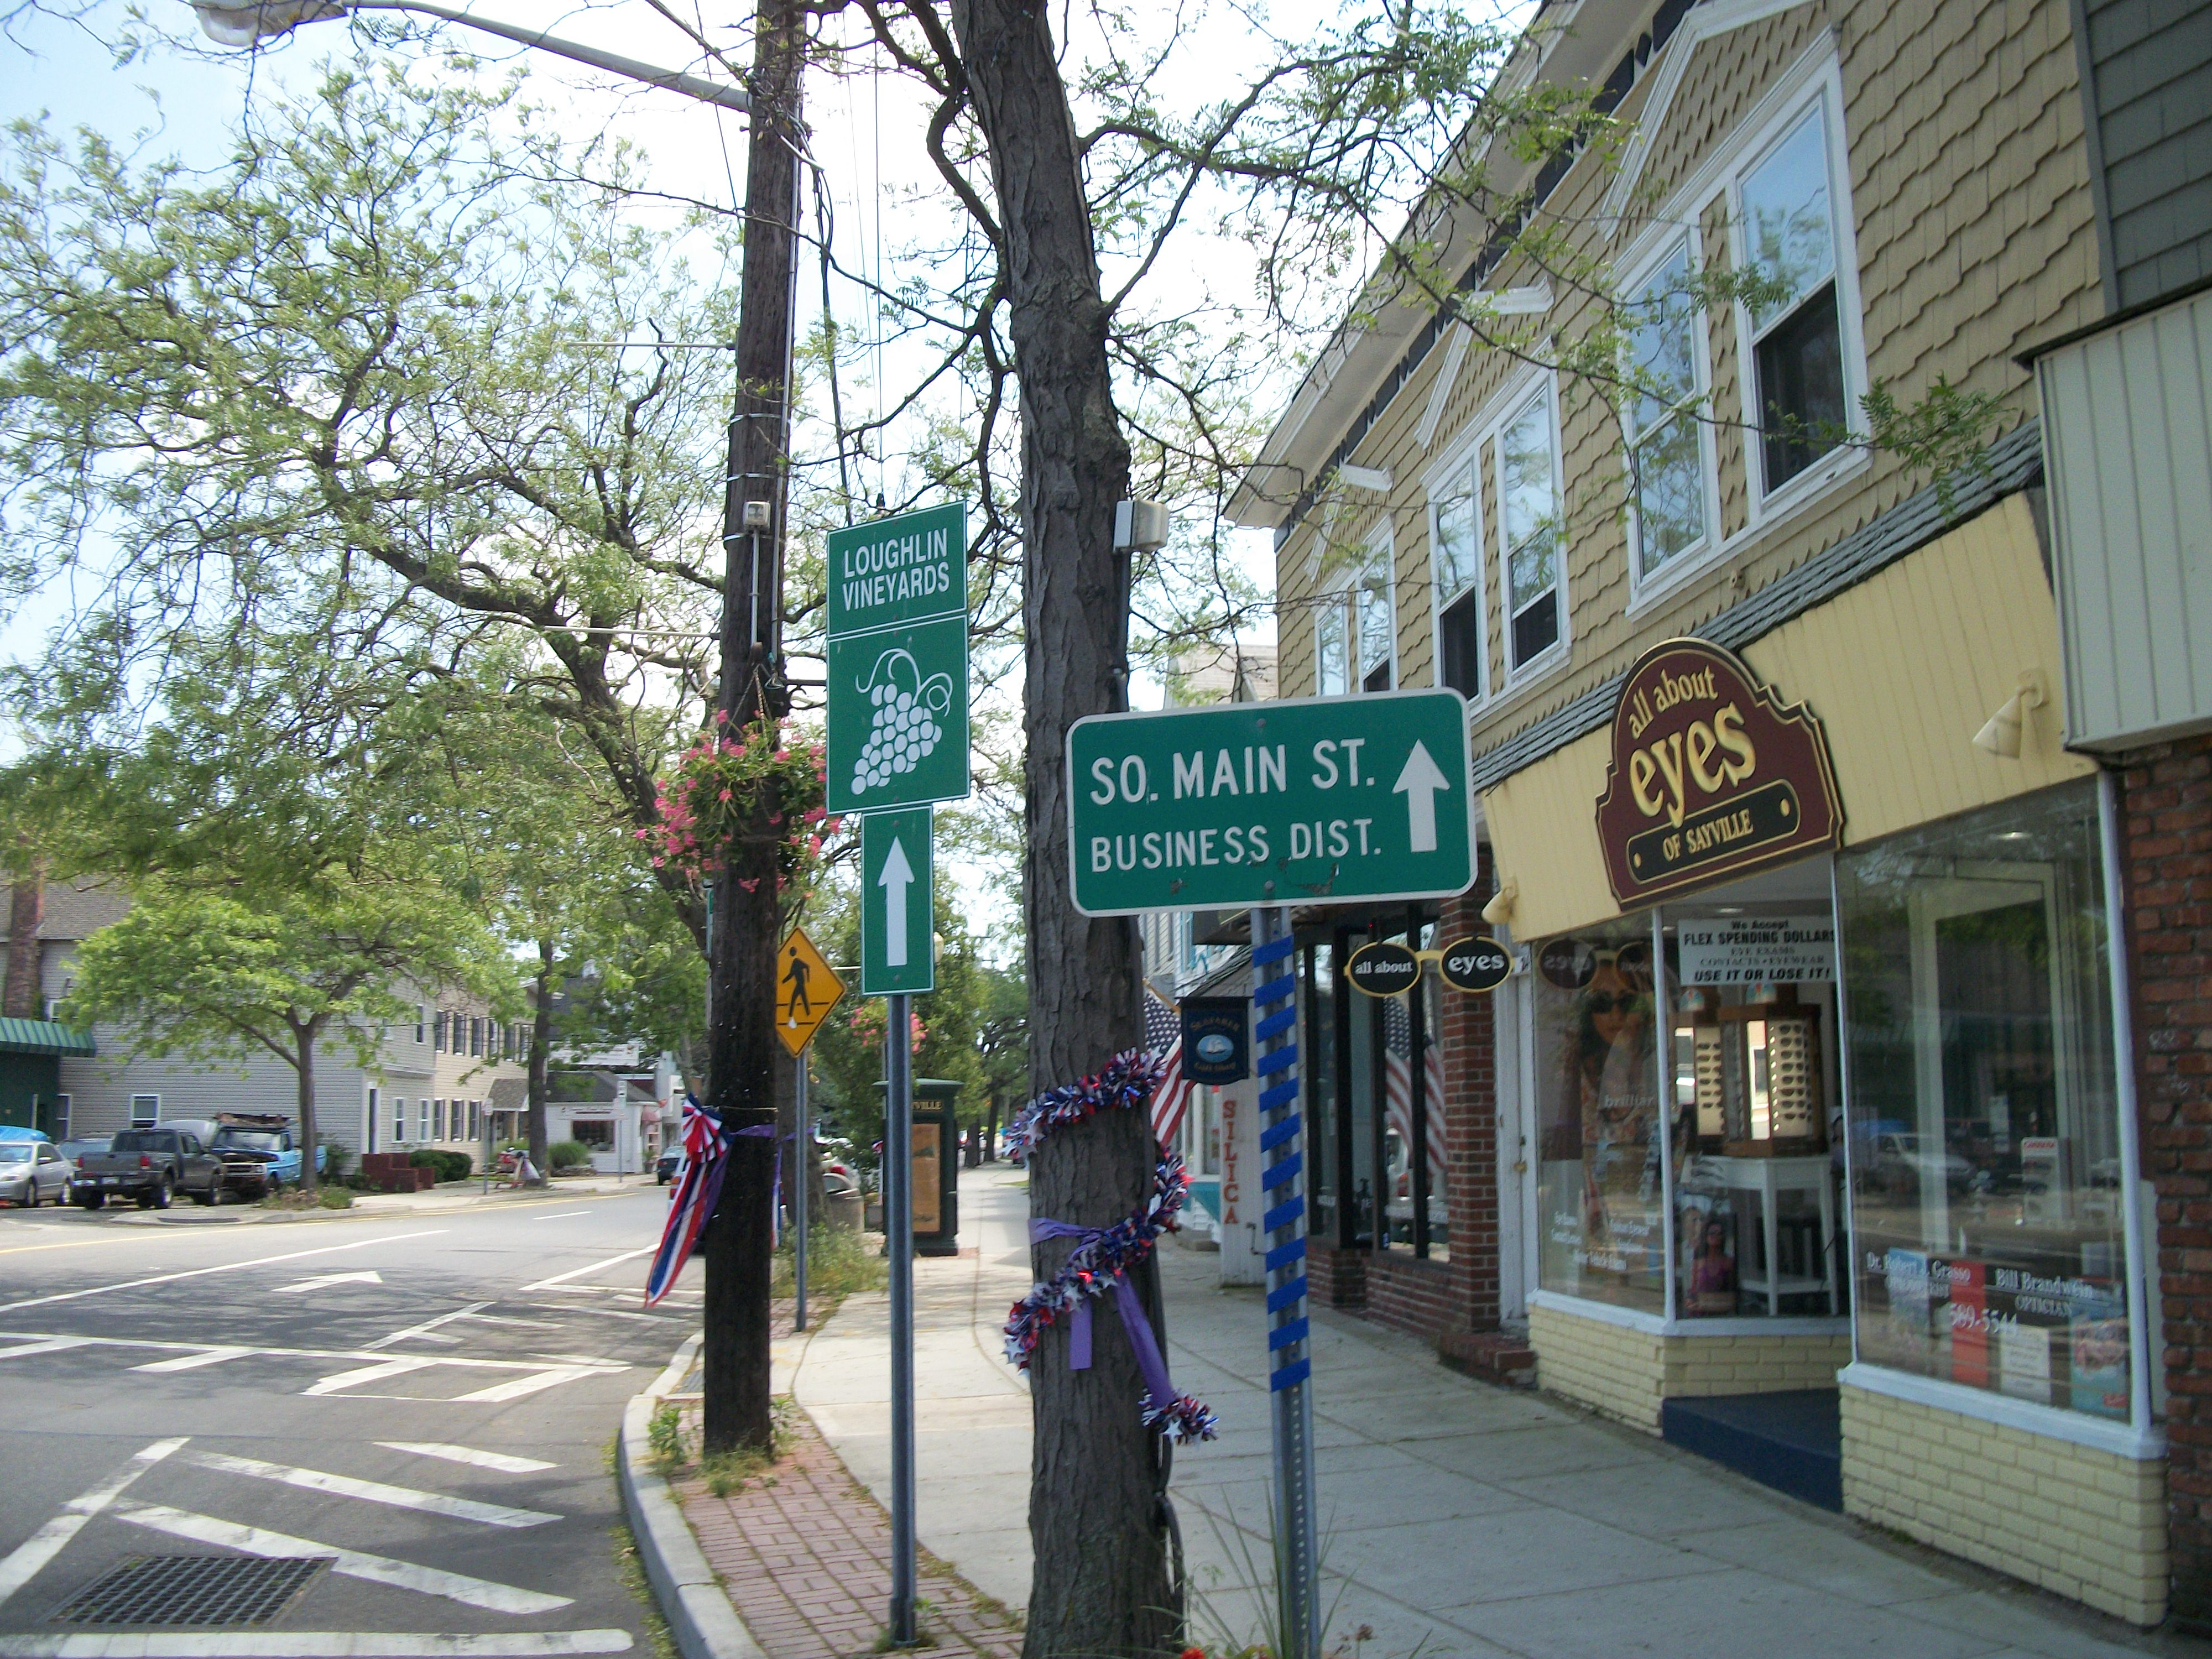 New york suffolk county sayville - File Sayville South Main Street Business District Sign Jpg